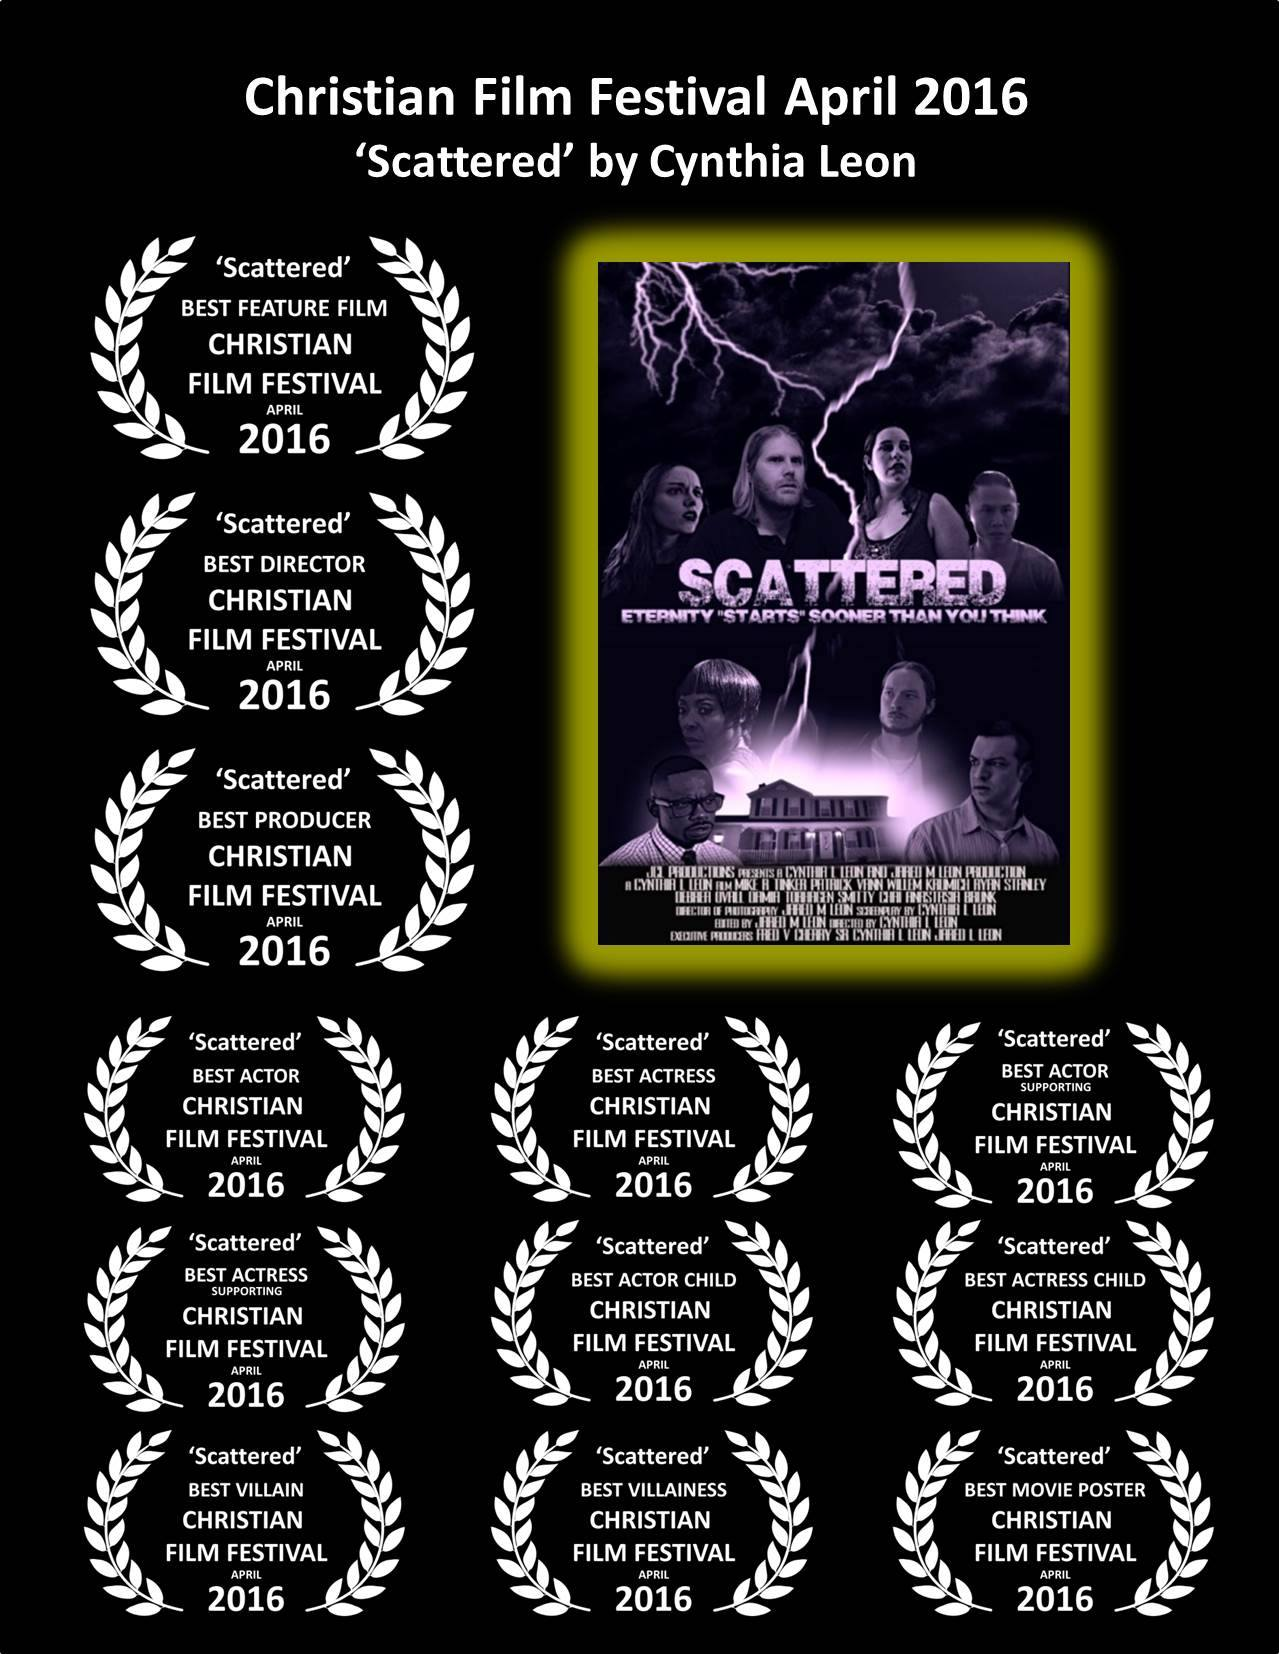 Scattered Christian Film Award